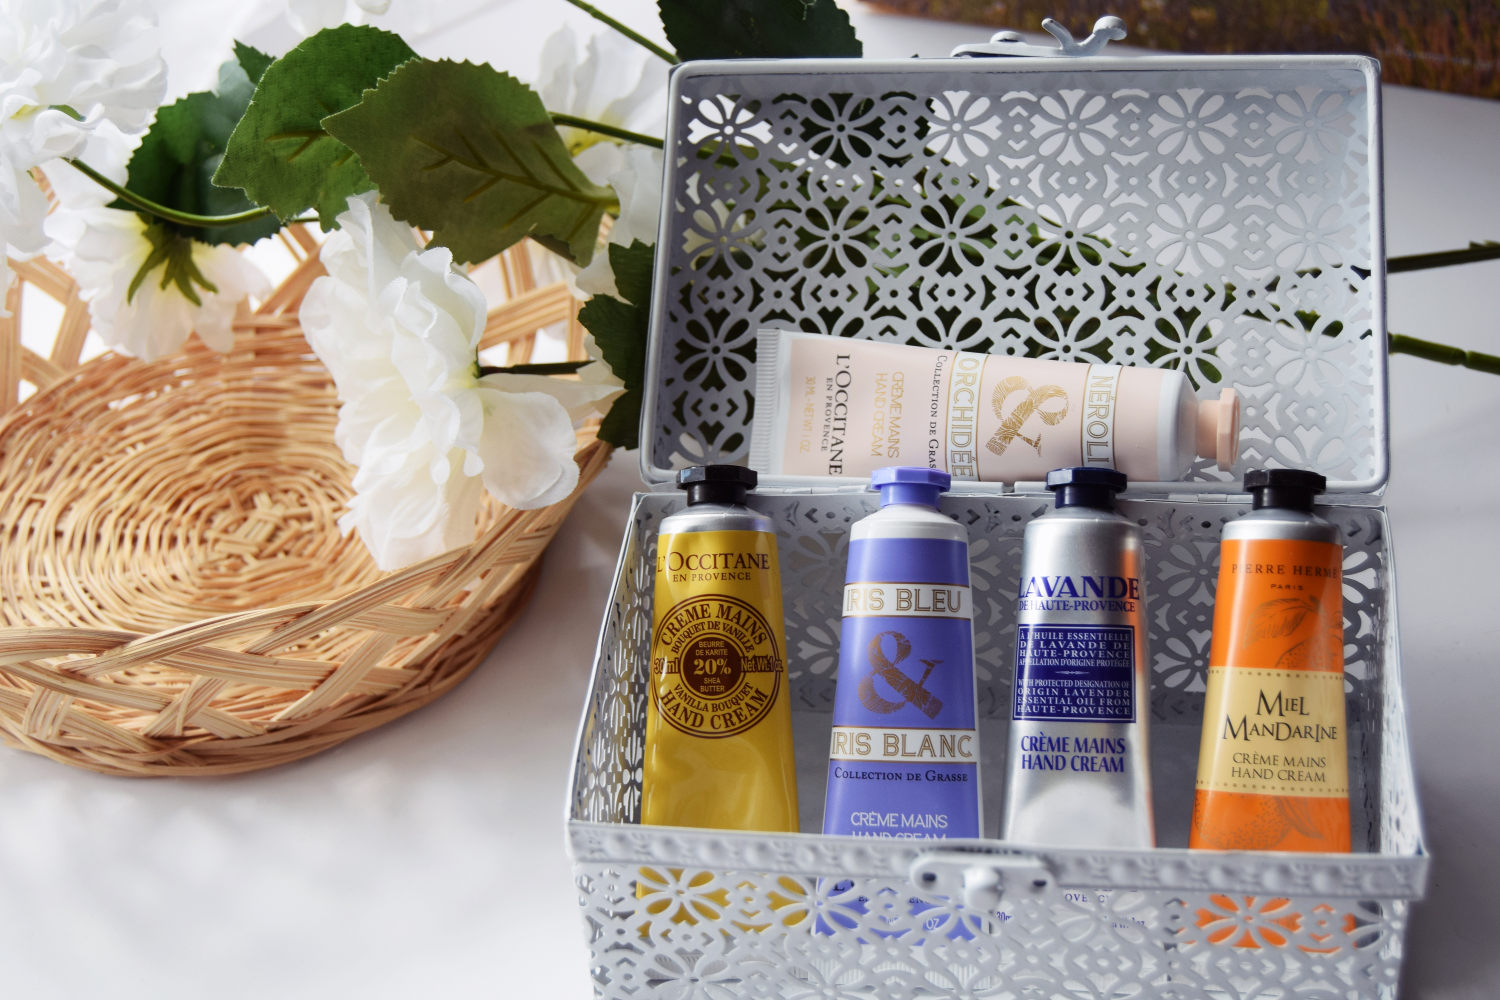 Loccitane_hand_creams_Zalabell_review_2